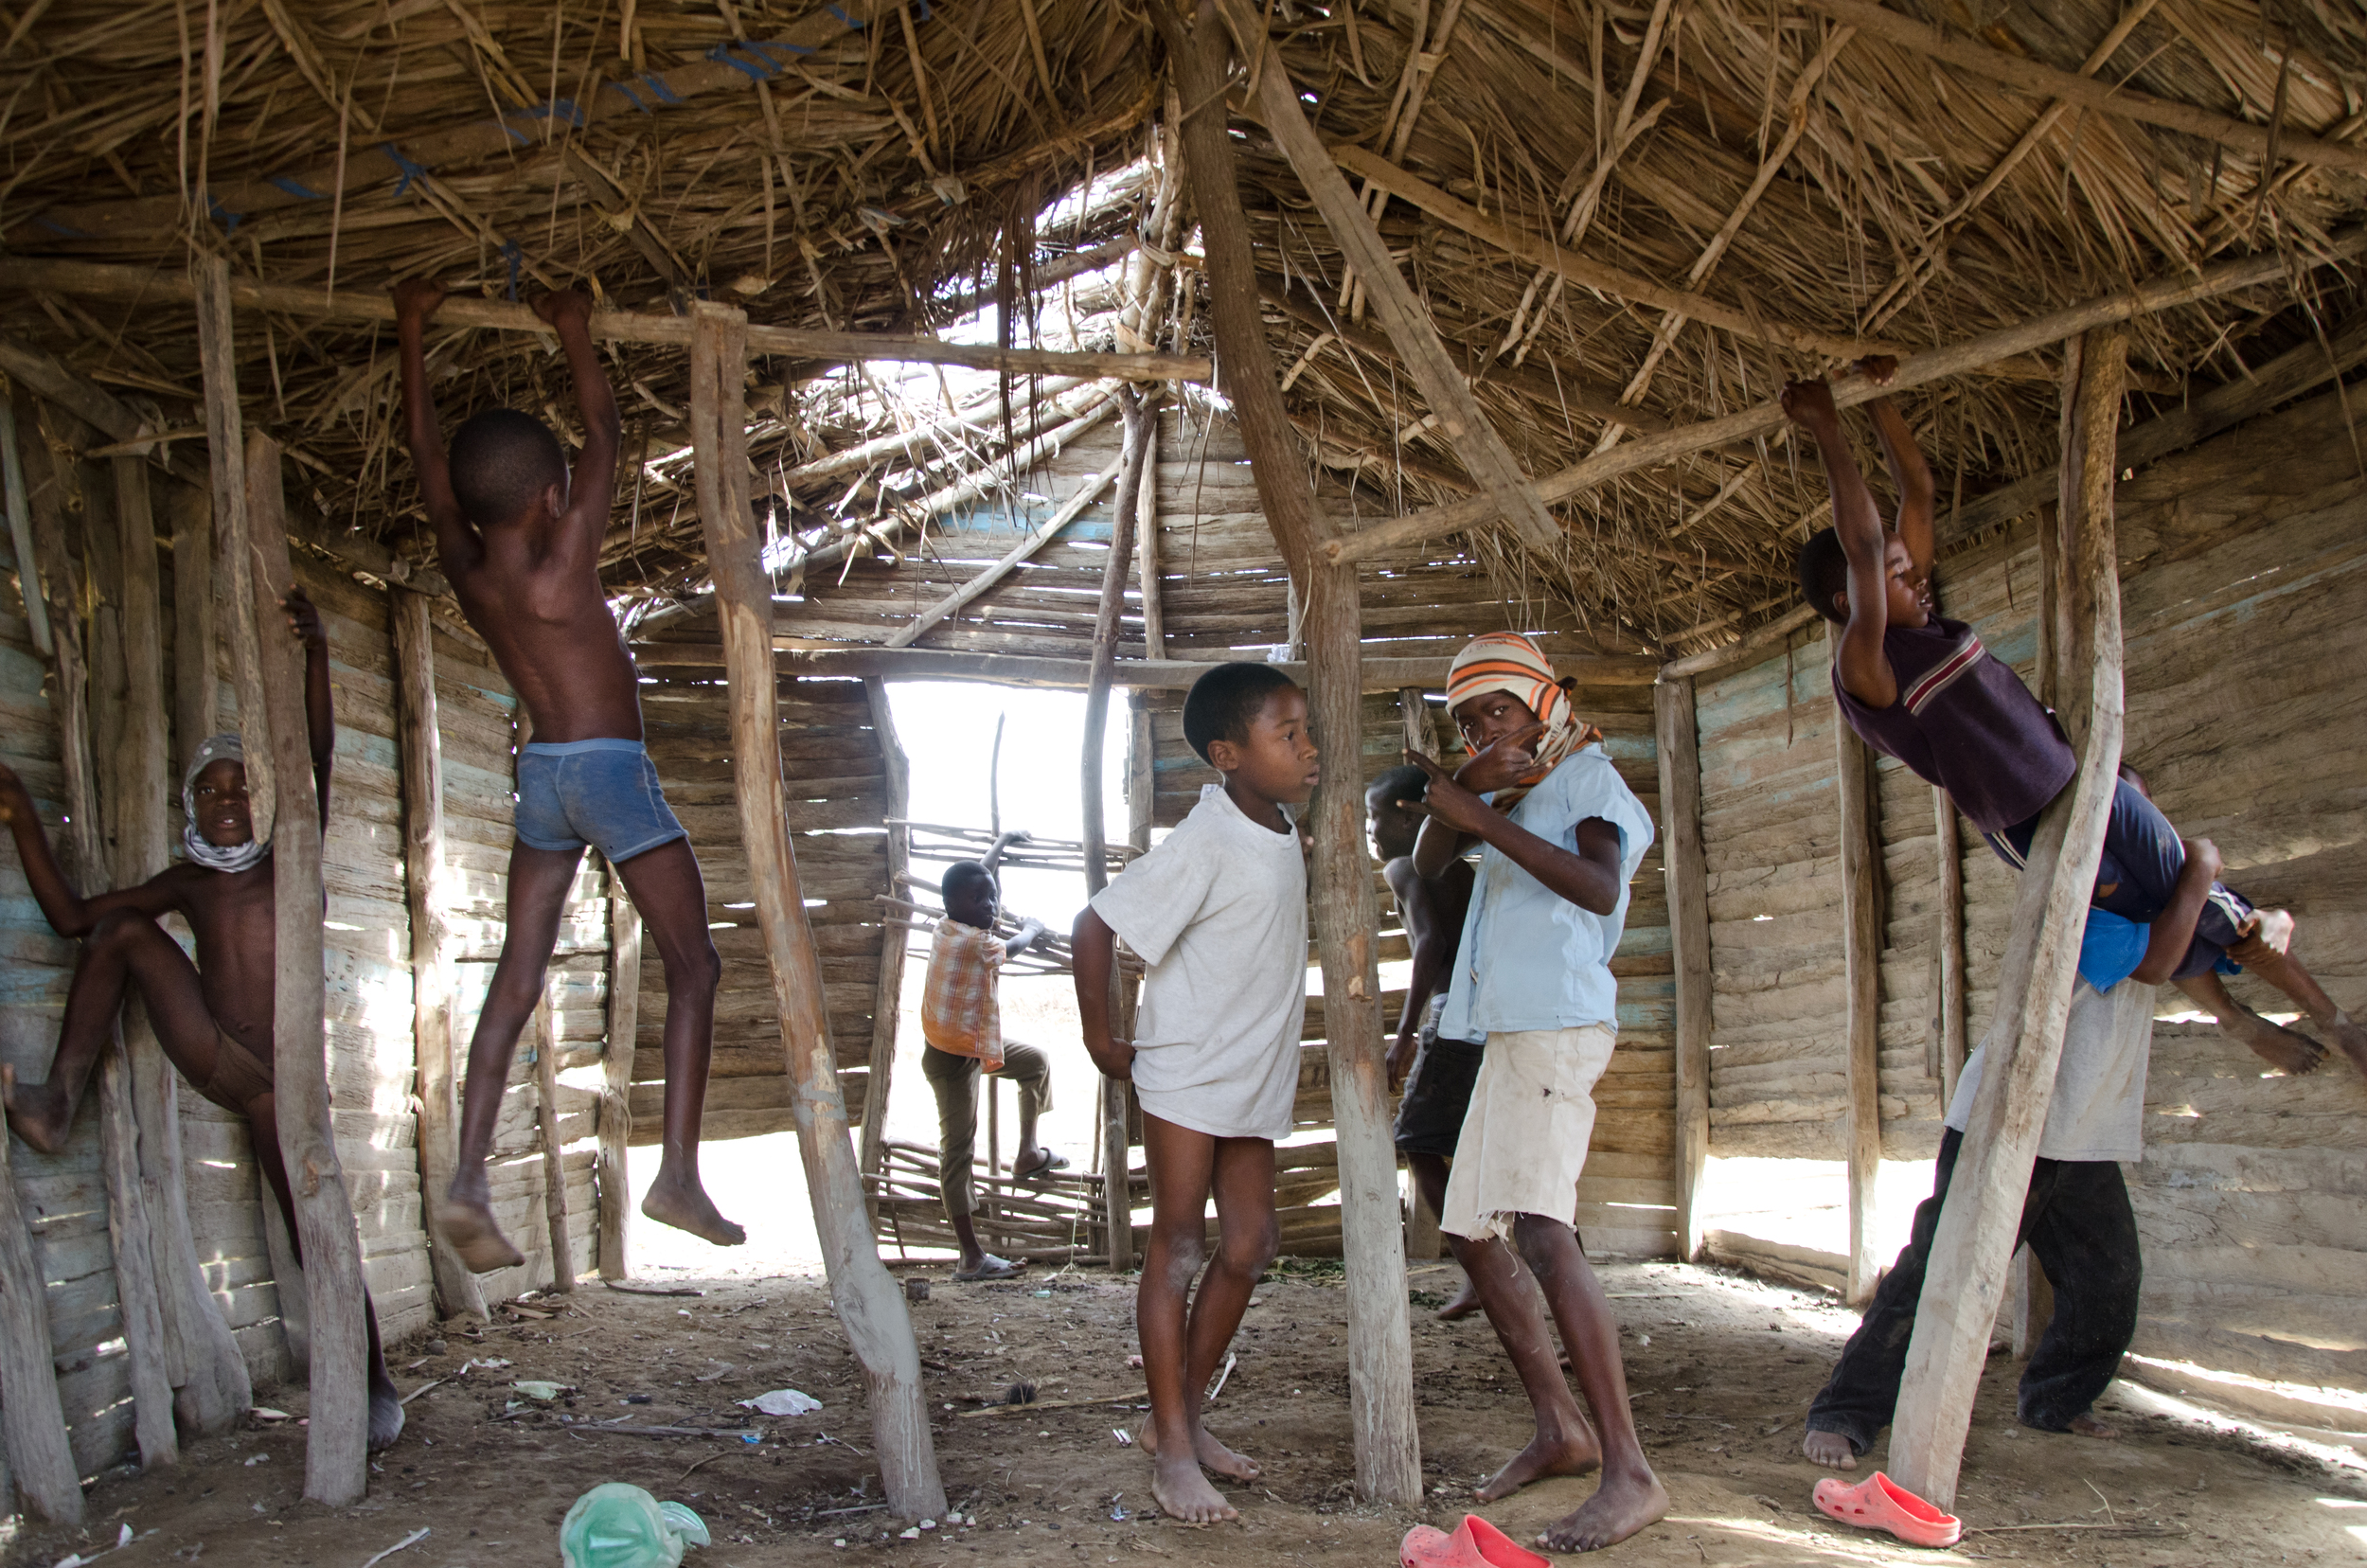 ​Boys from a Haitian sugar cane shanytown play in an abandoned thatch hut near Barahona, Dominican Republic.